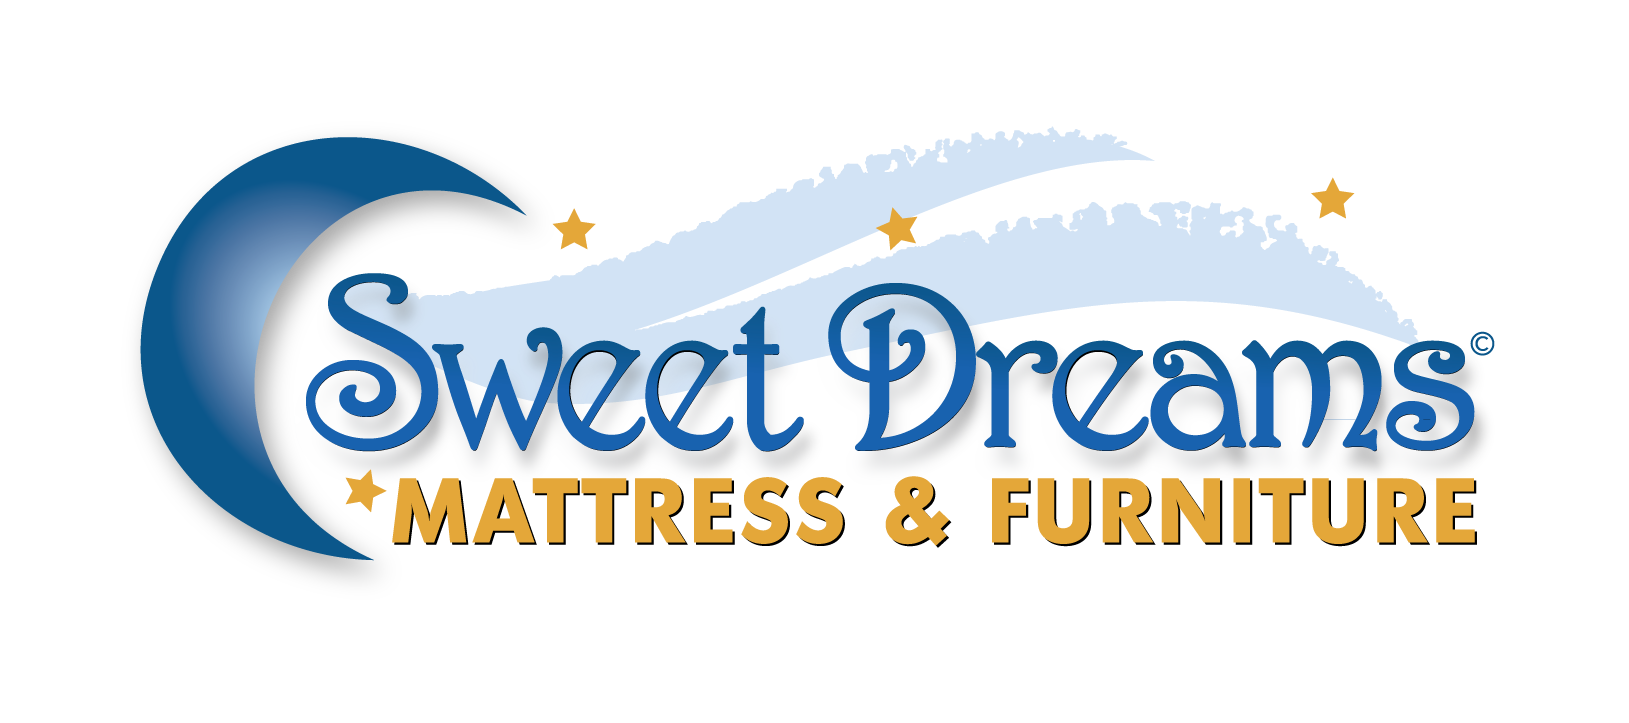 Sweet Dreams Mattress & Furniture